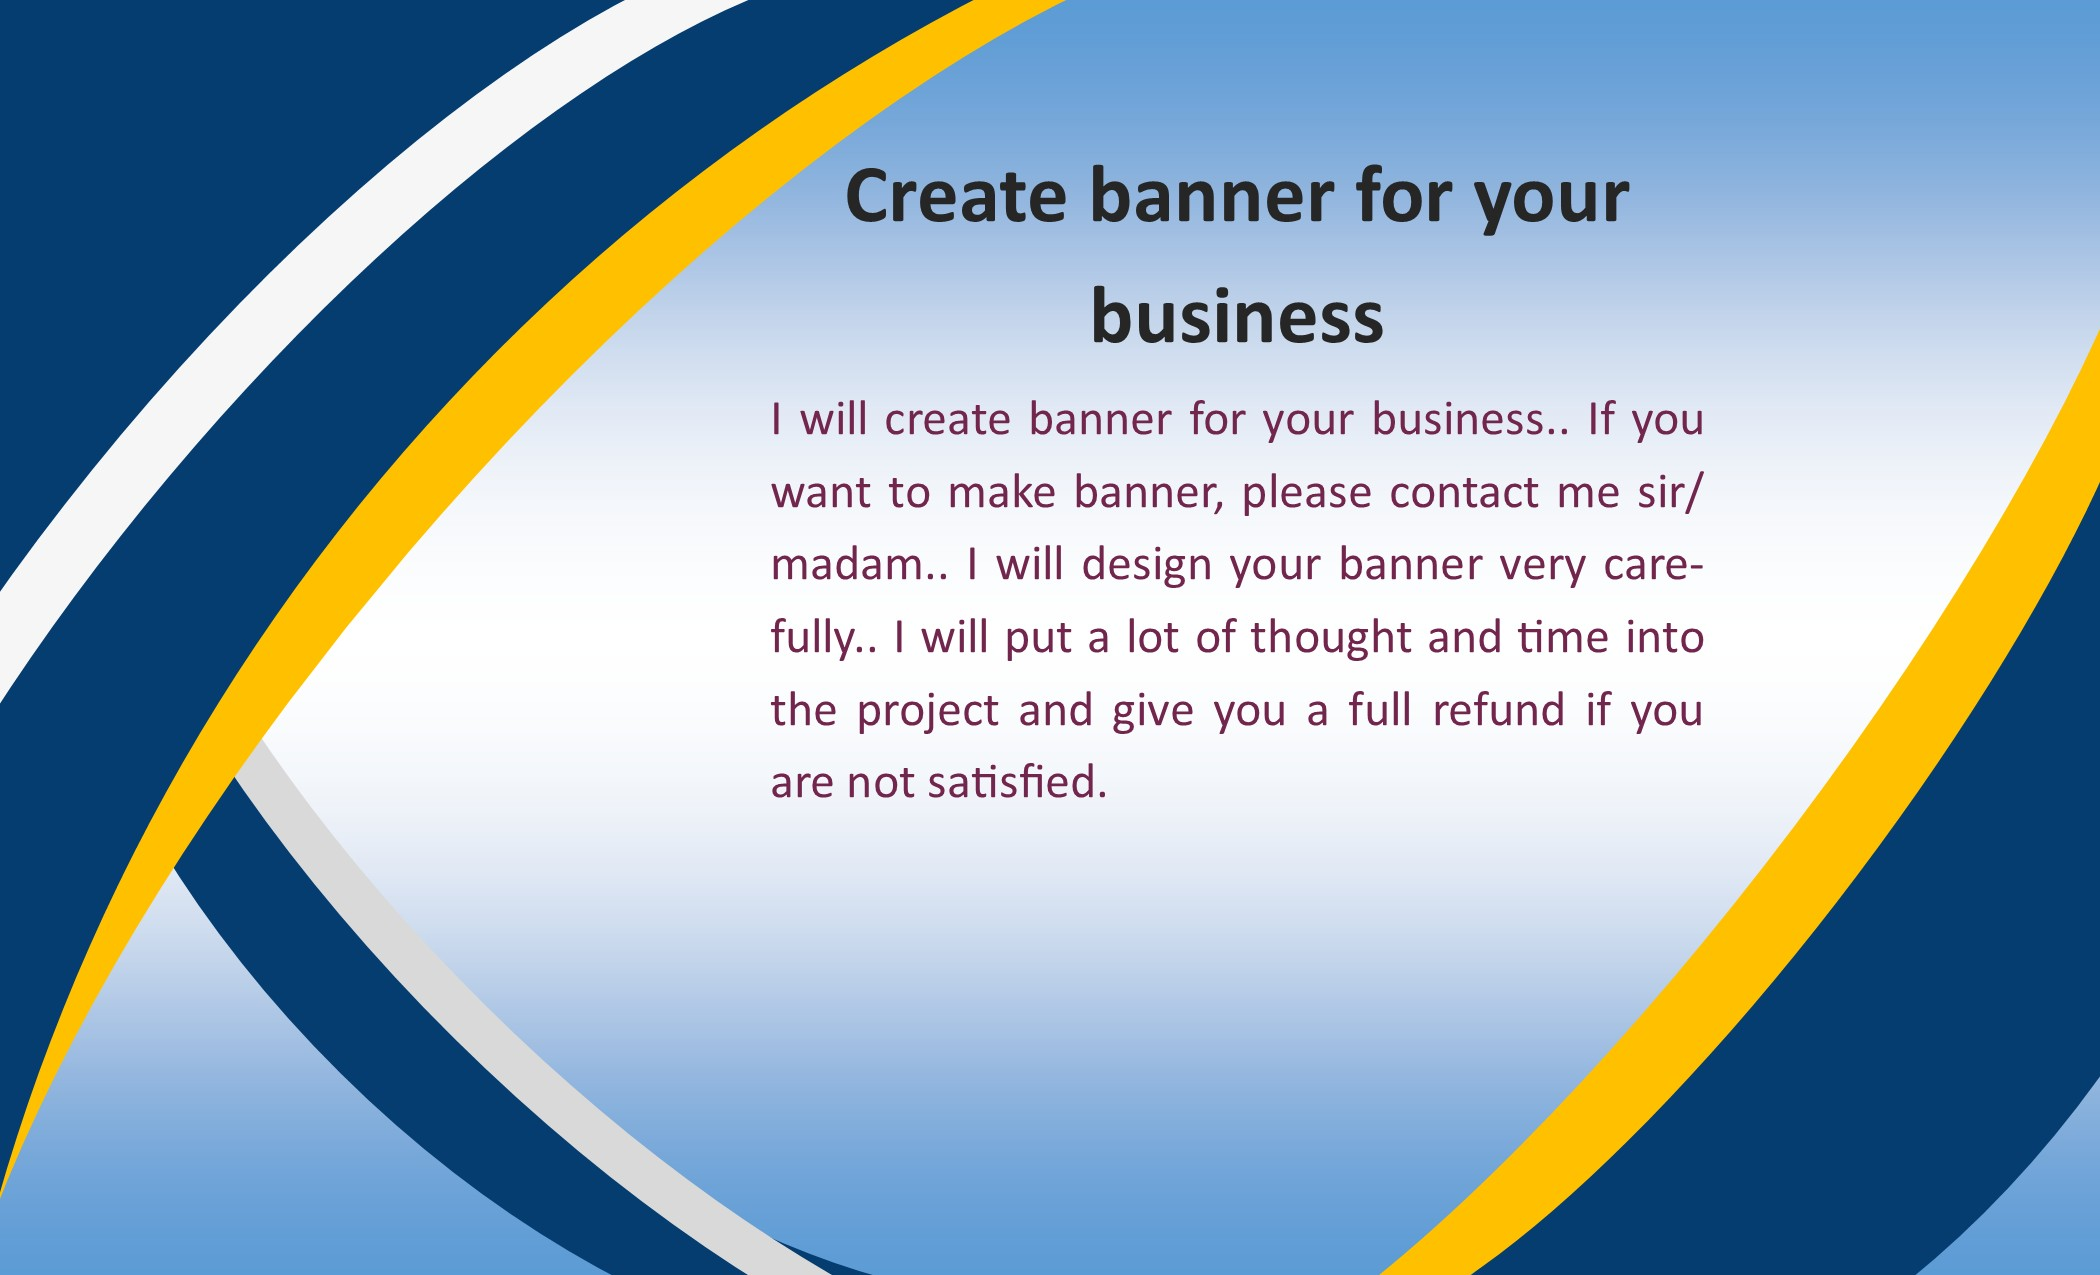 Create banner/logo for your business